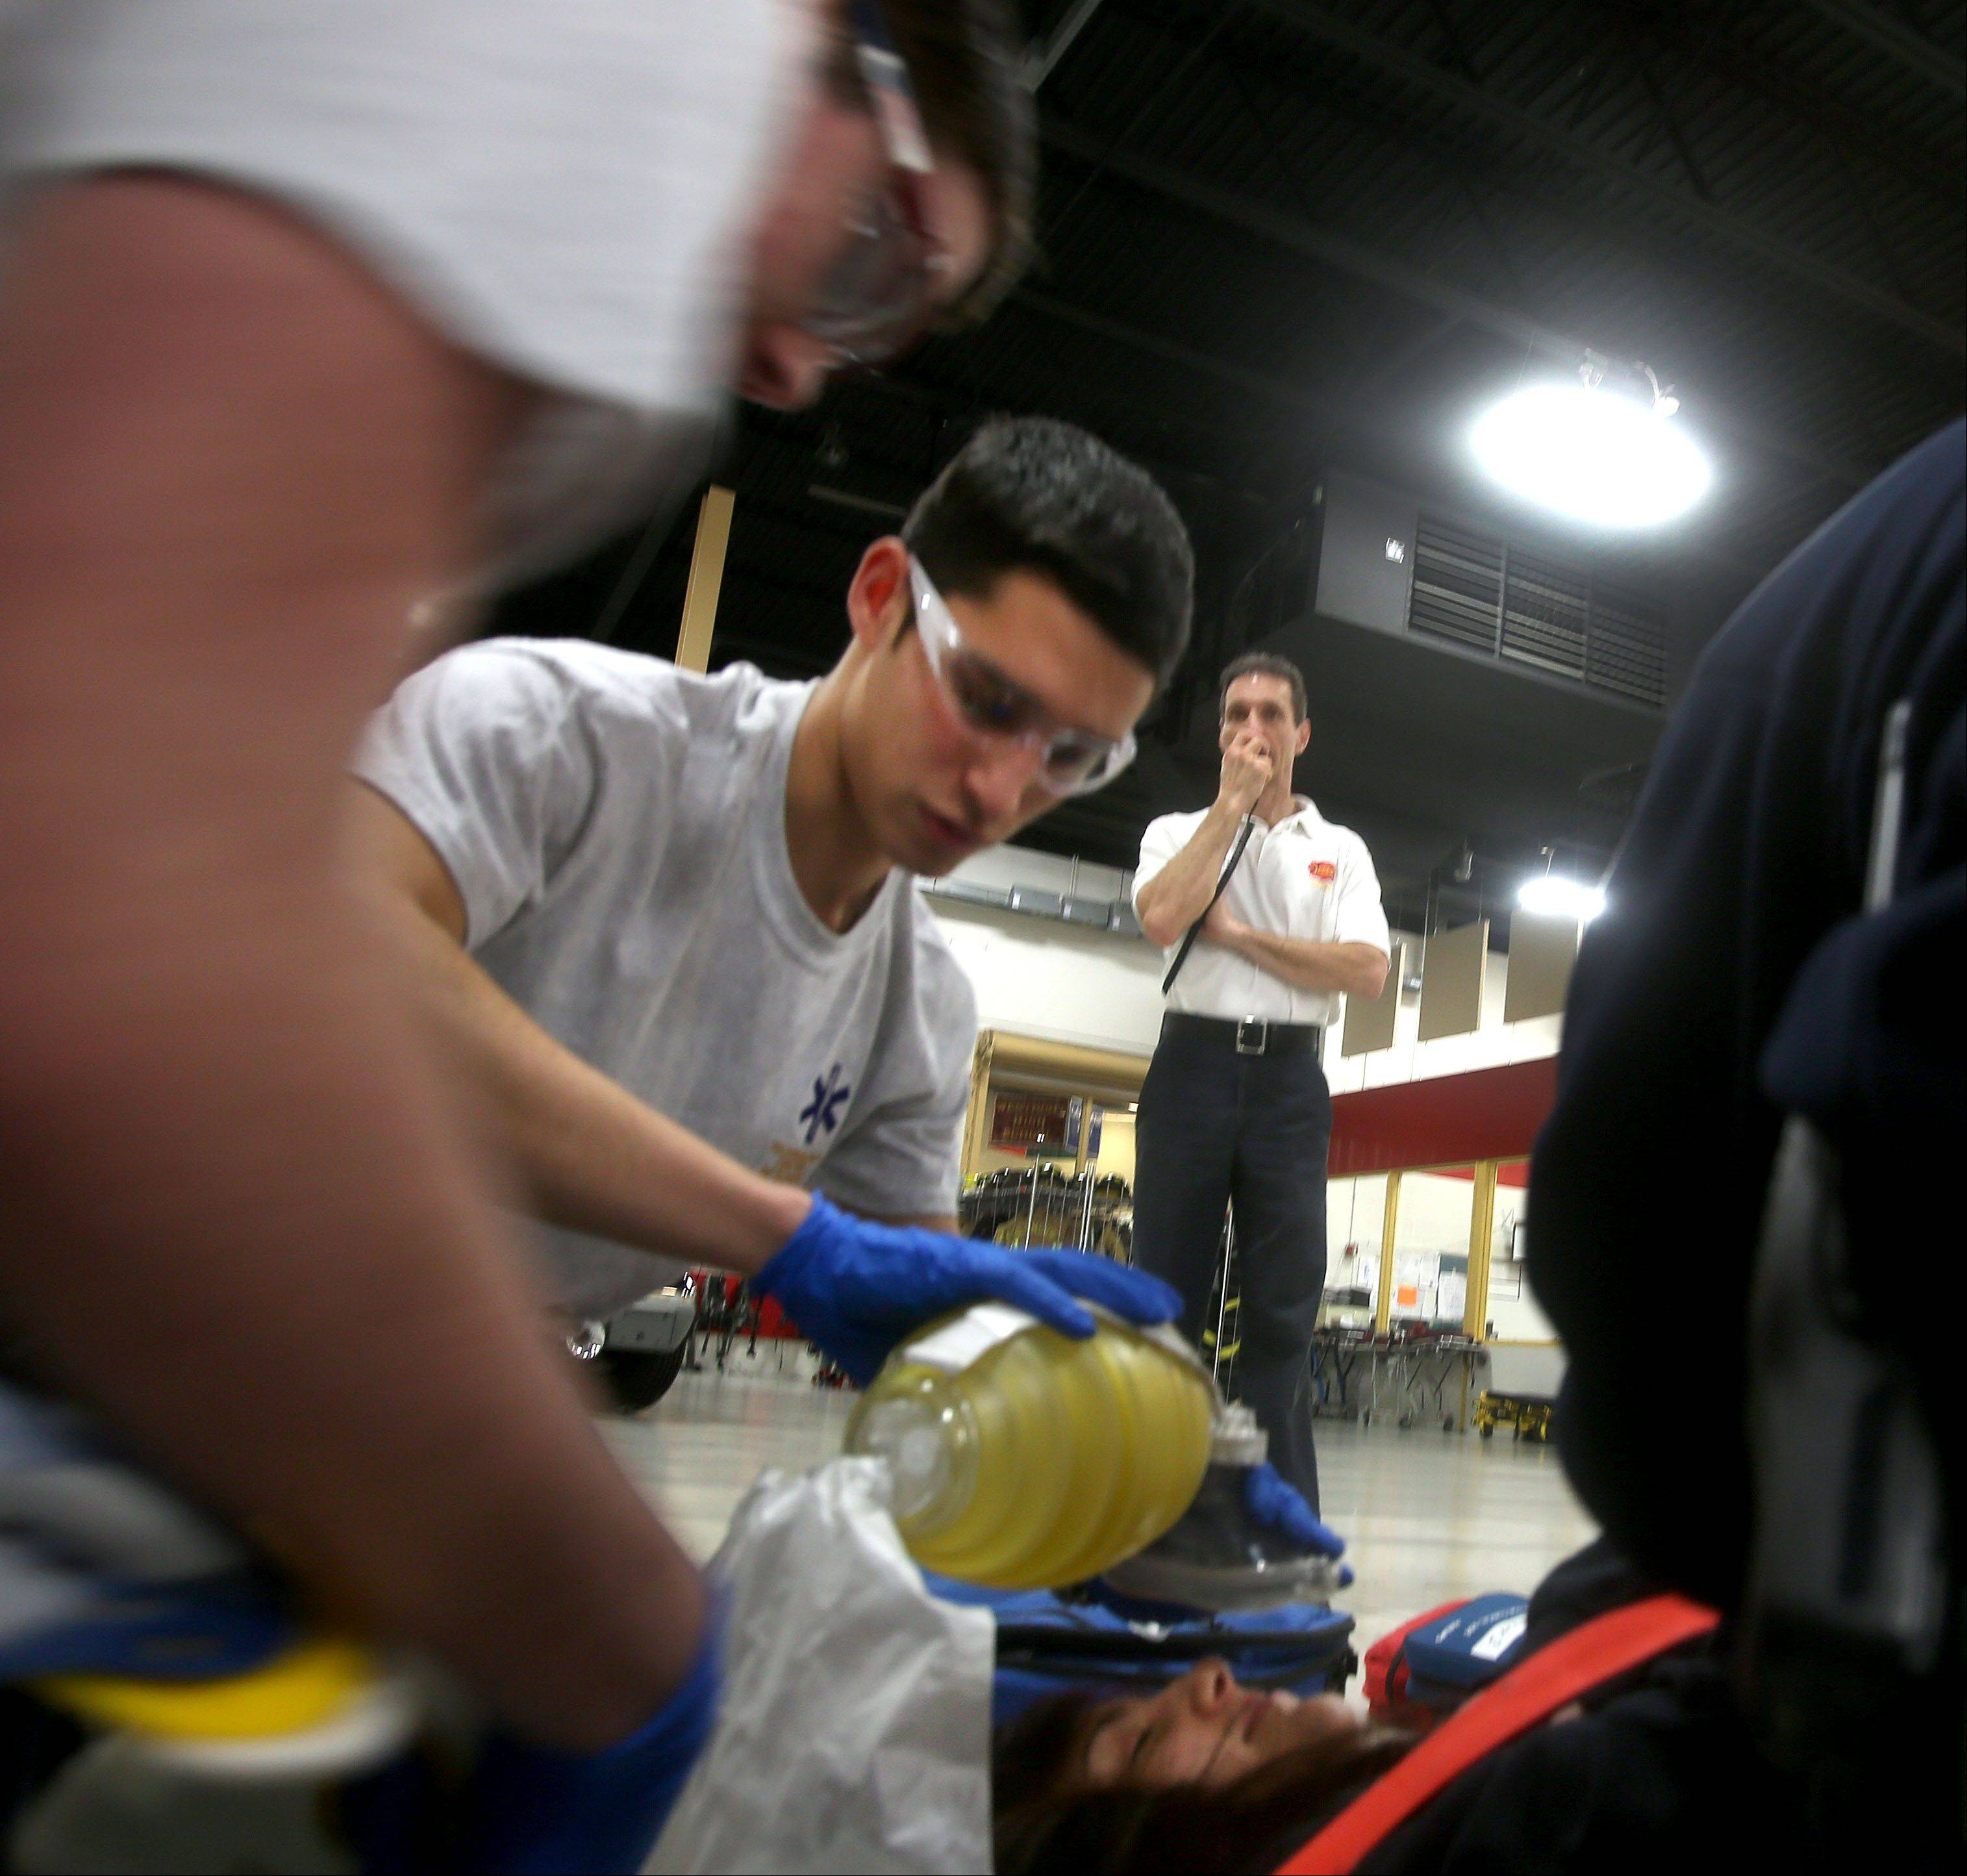 Fire science student Alec Siwek, center, of Naperville participates in a training drill monitored by EMT class instructor Greg Leston.